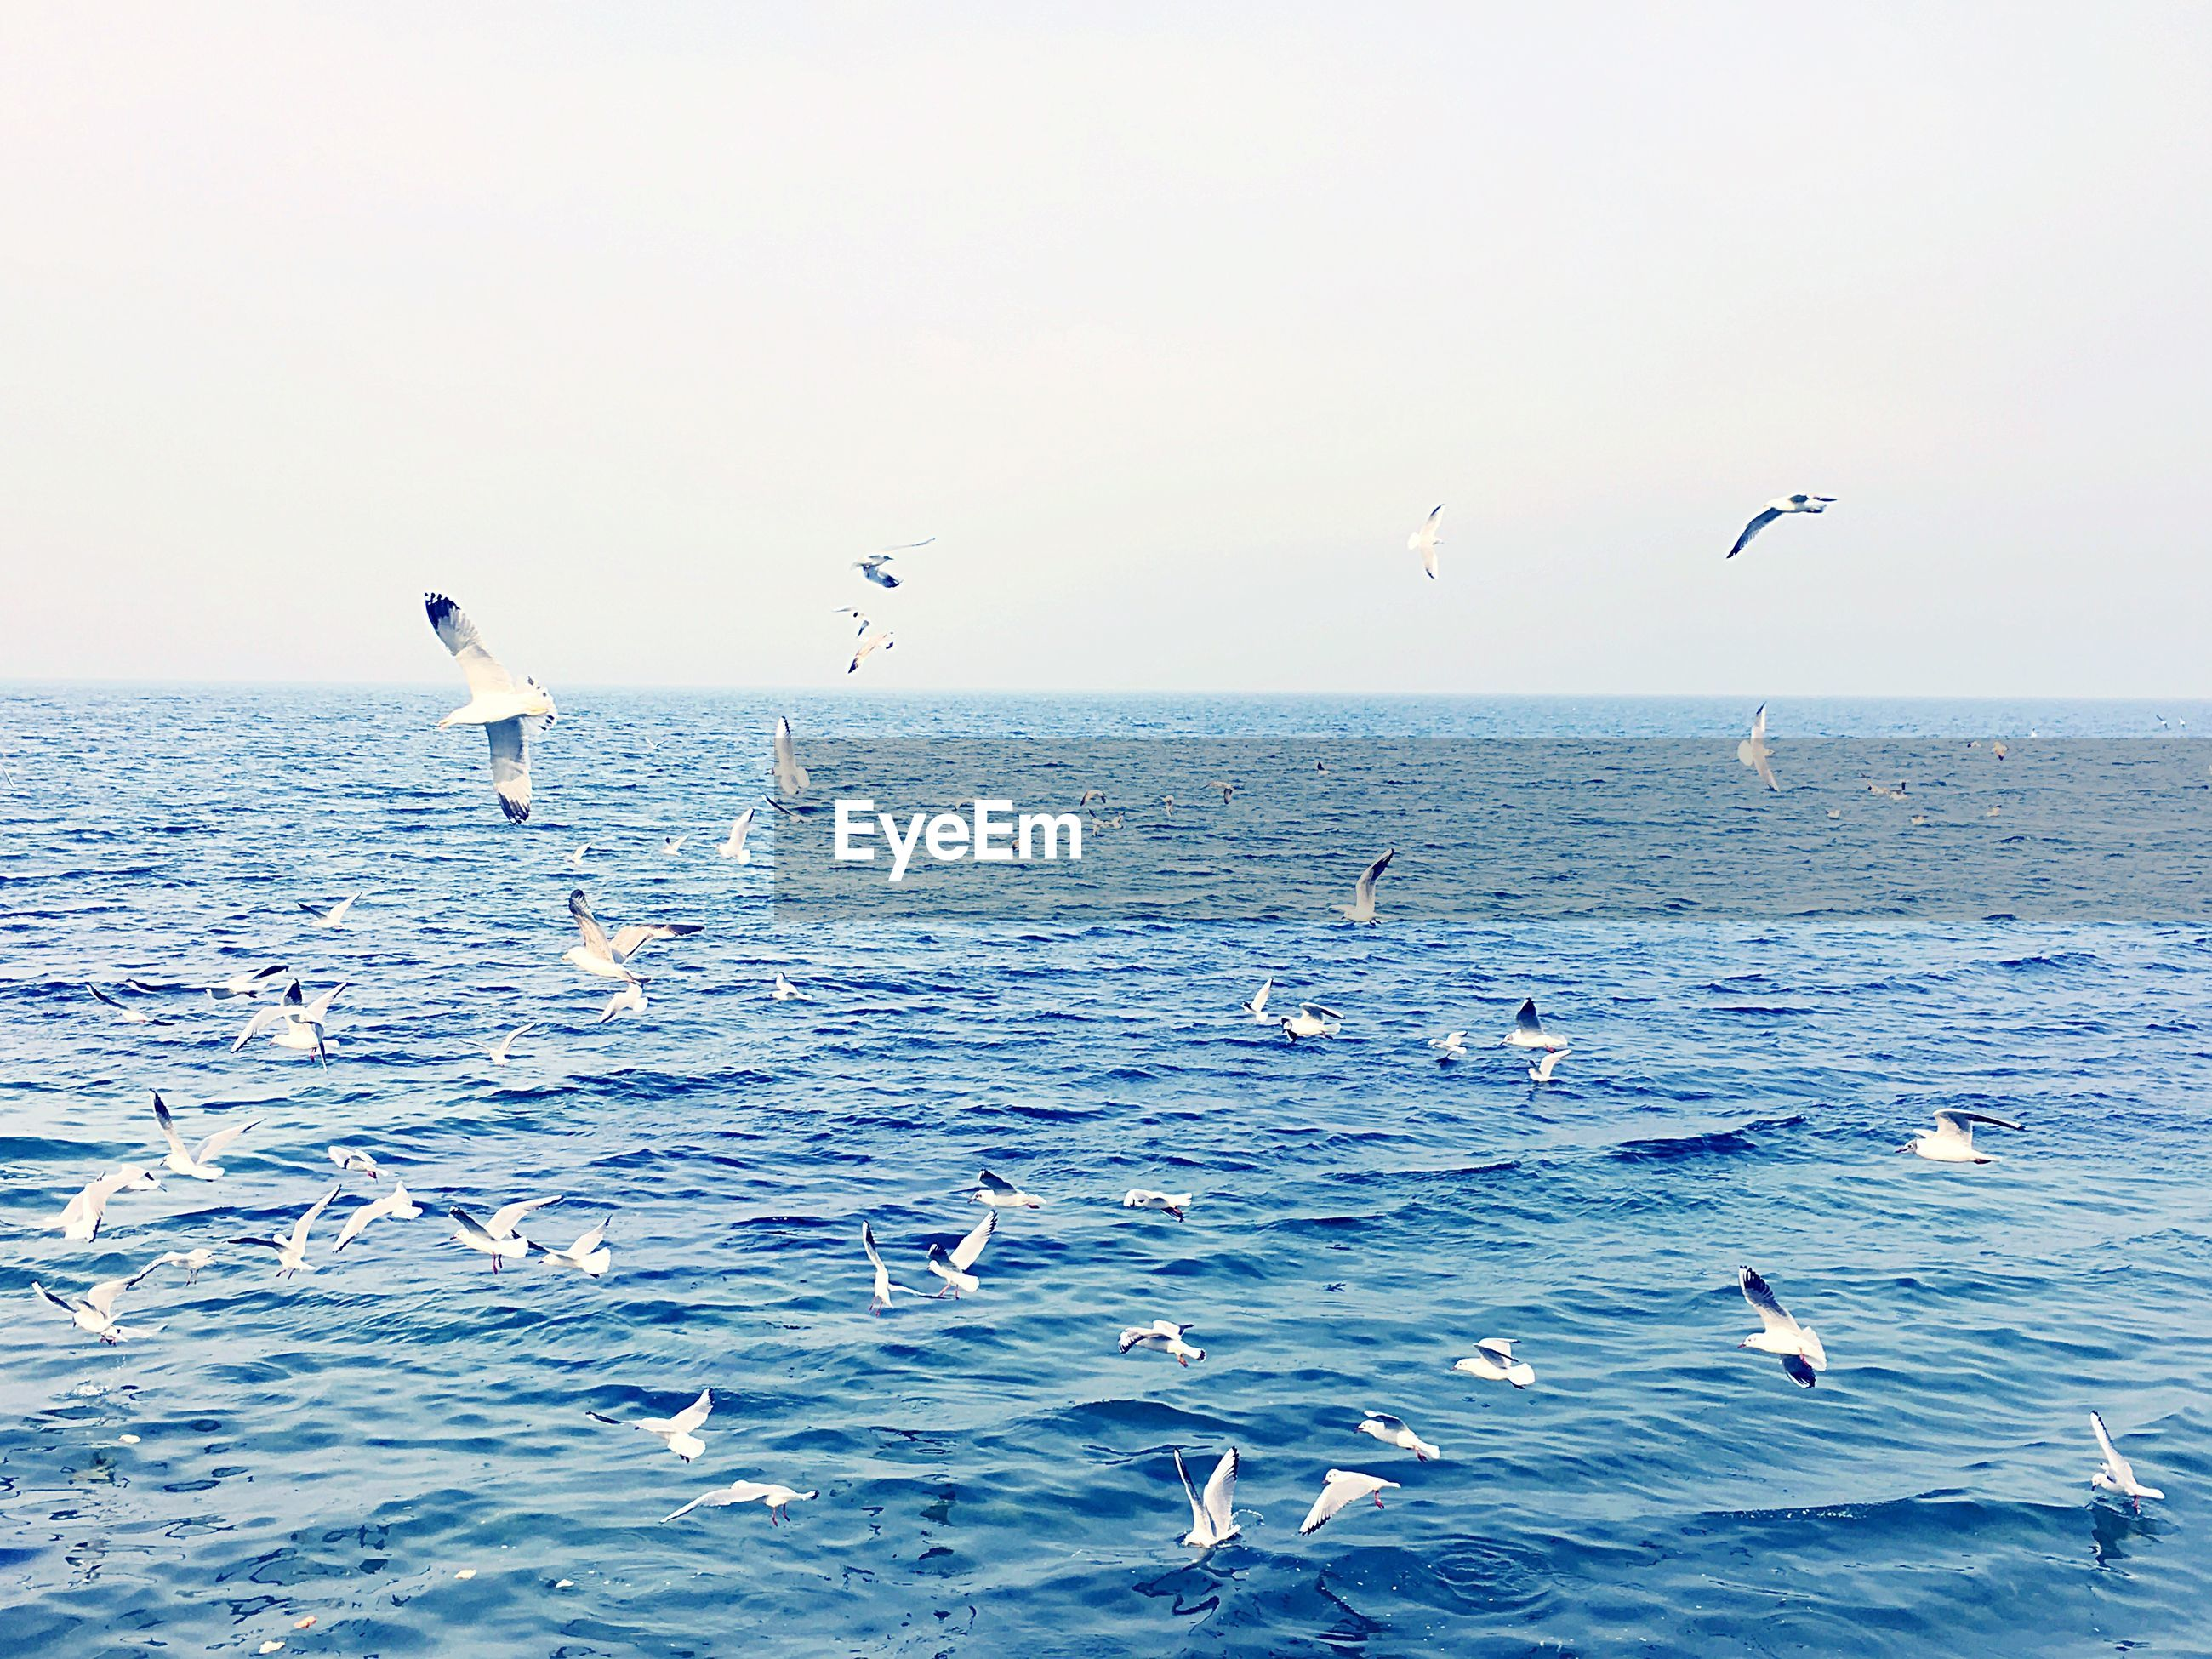 bird, flying, animal themes, animals in the wild, wildlife, sea, water, horizon over water, spread wings, seagull, mid-air, waterfront, beauty in nature, scenics, clear sky, flock of birds, nature, tranquil scene, tranquility